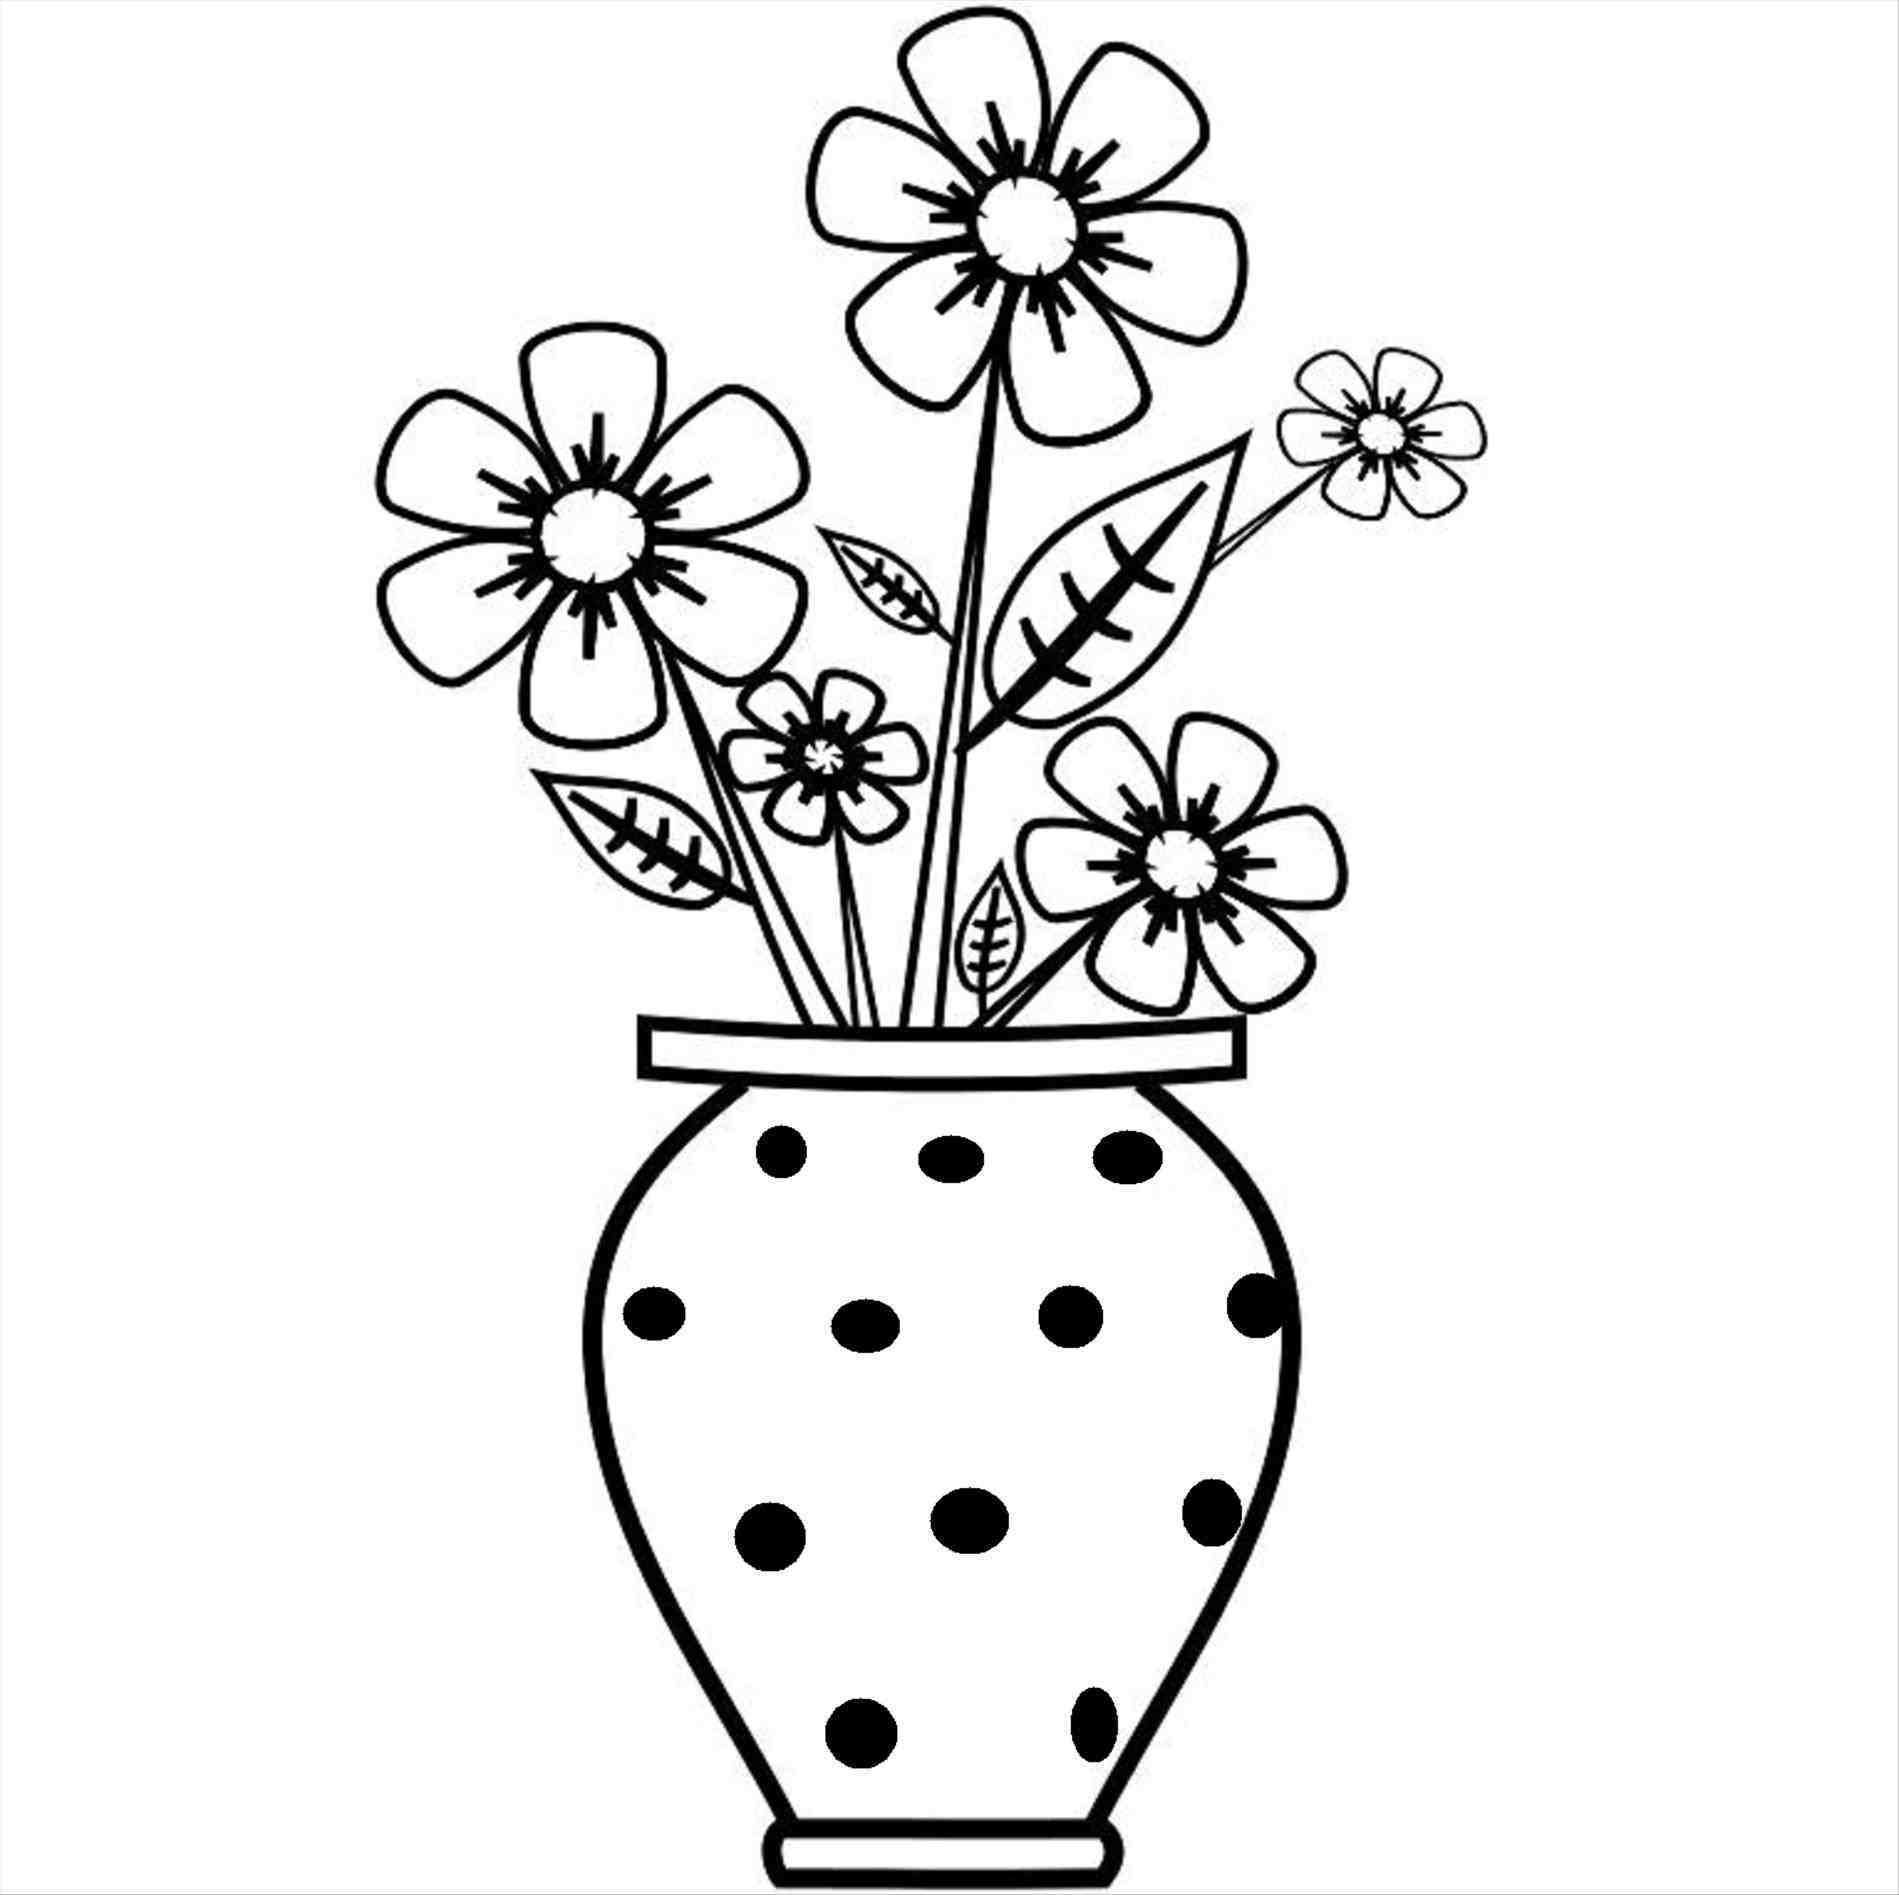 How To Draw A Flower Easy Step By Step Flowers For Kids Full Size Of Kitchen Interior Si Flower Drawing For Kids Easy Flower Drawings Flower Vase Drawing